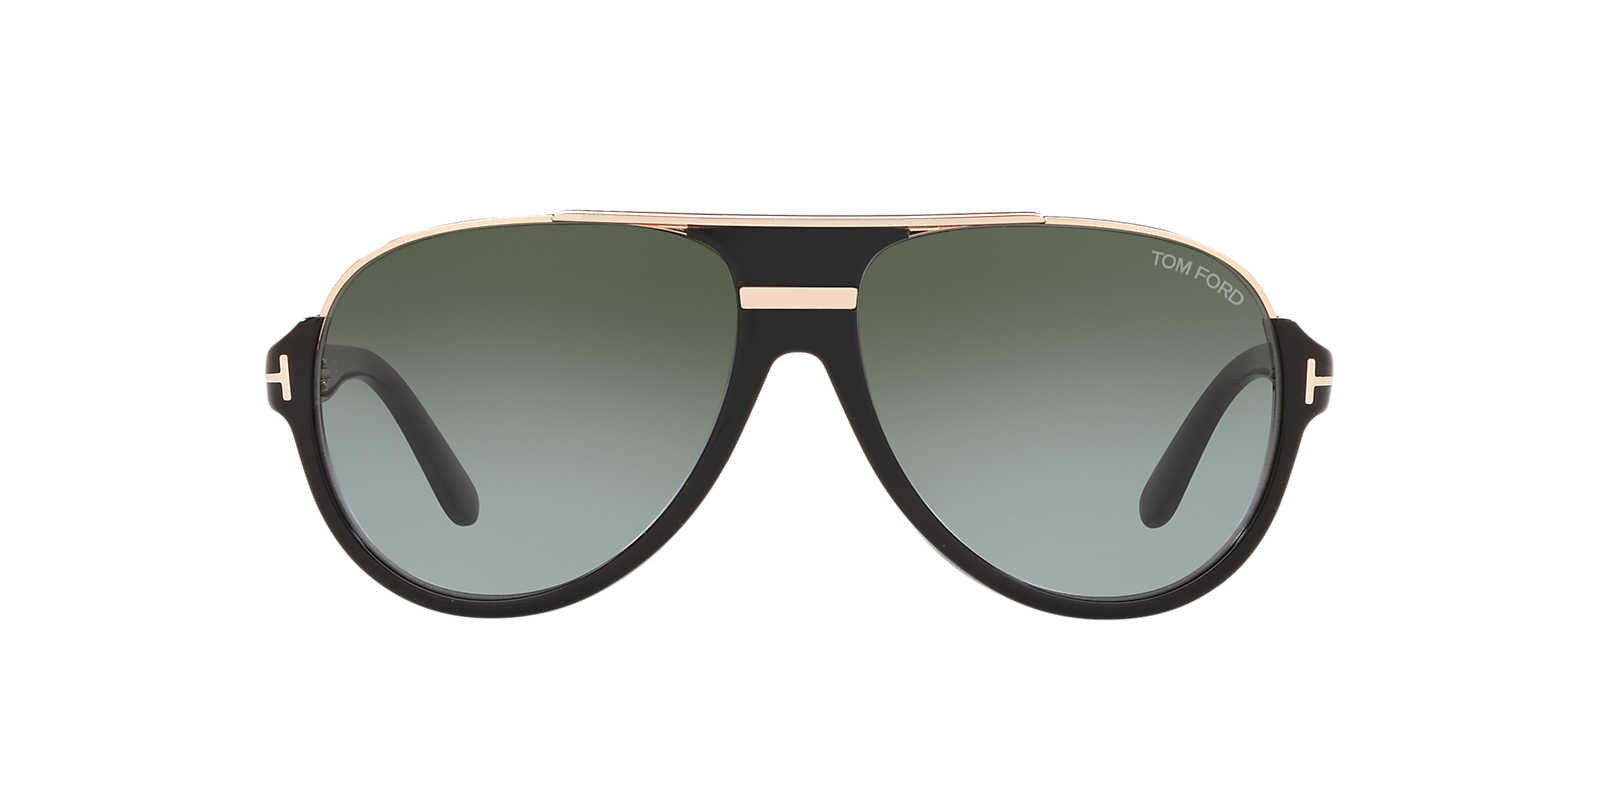 image: tom ford sunglasses [1]